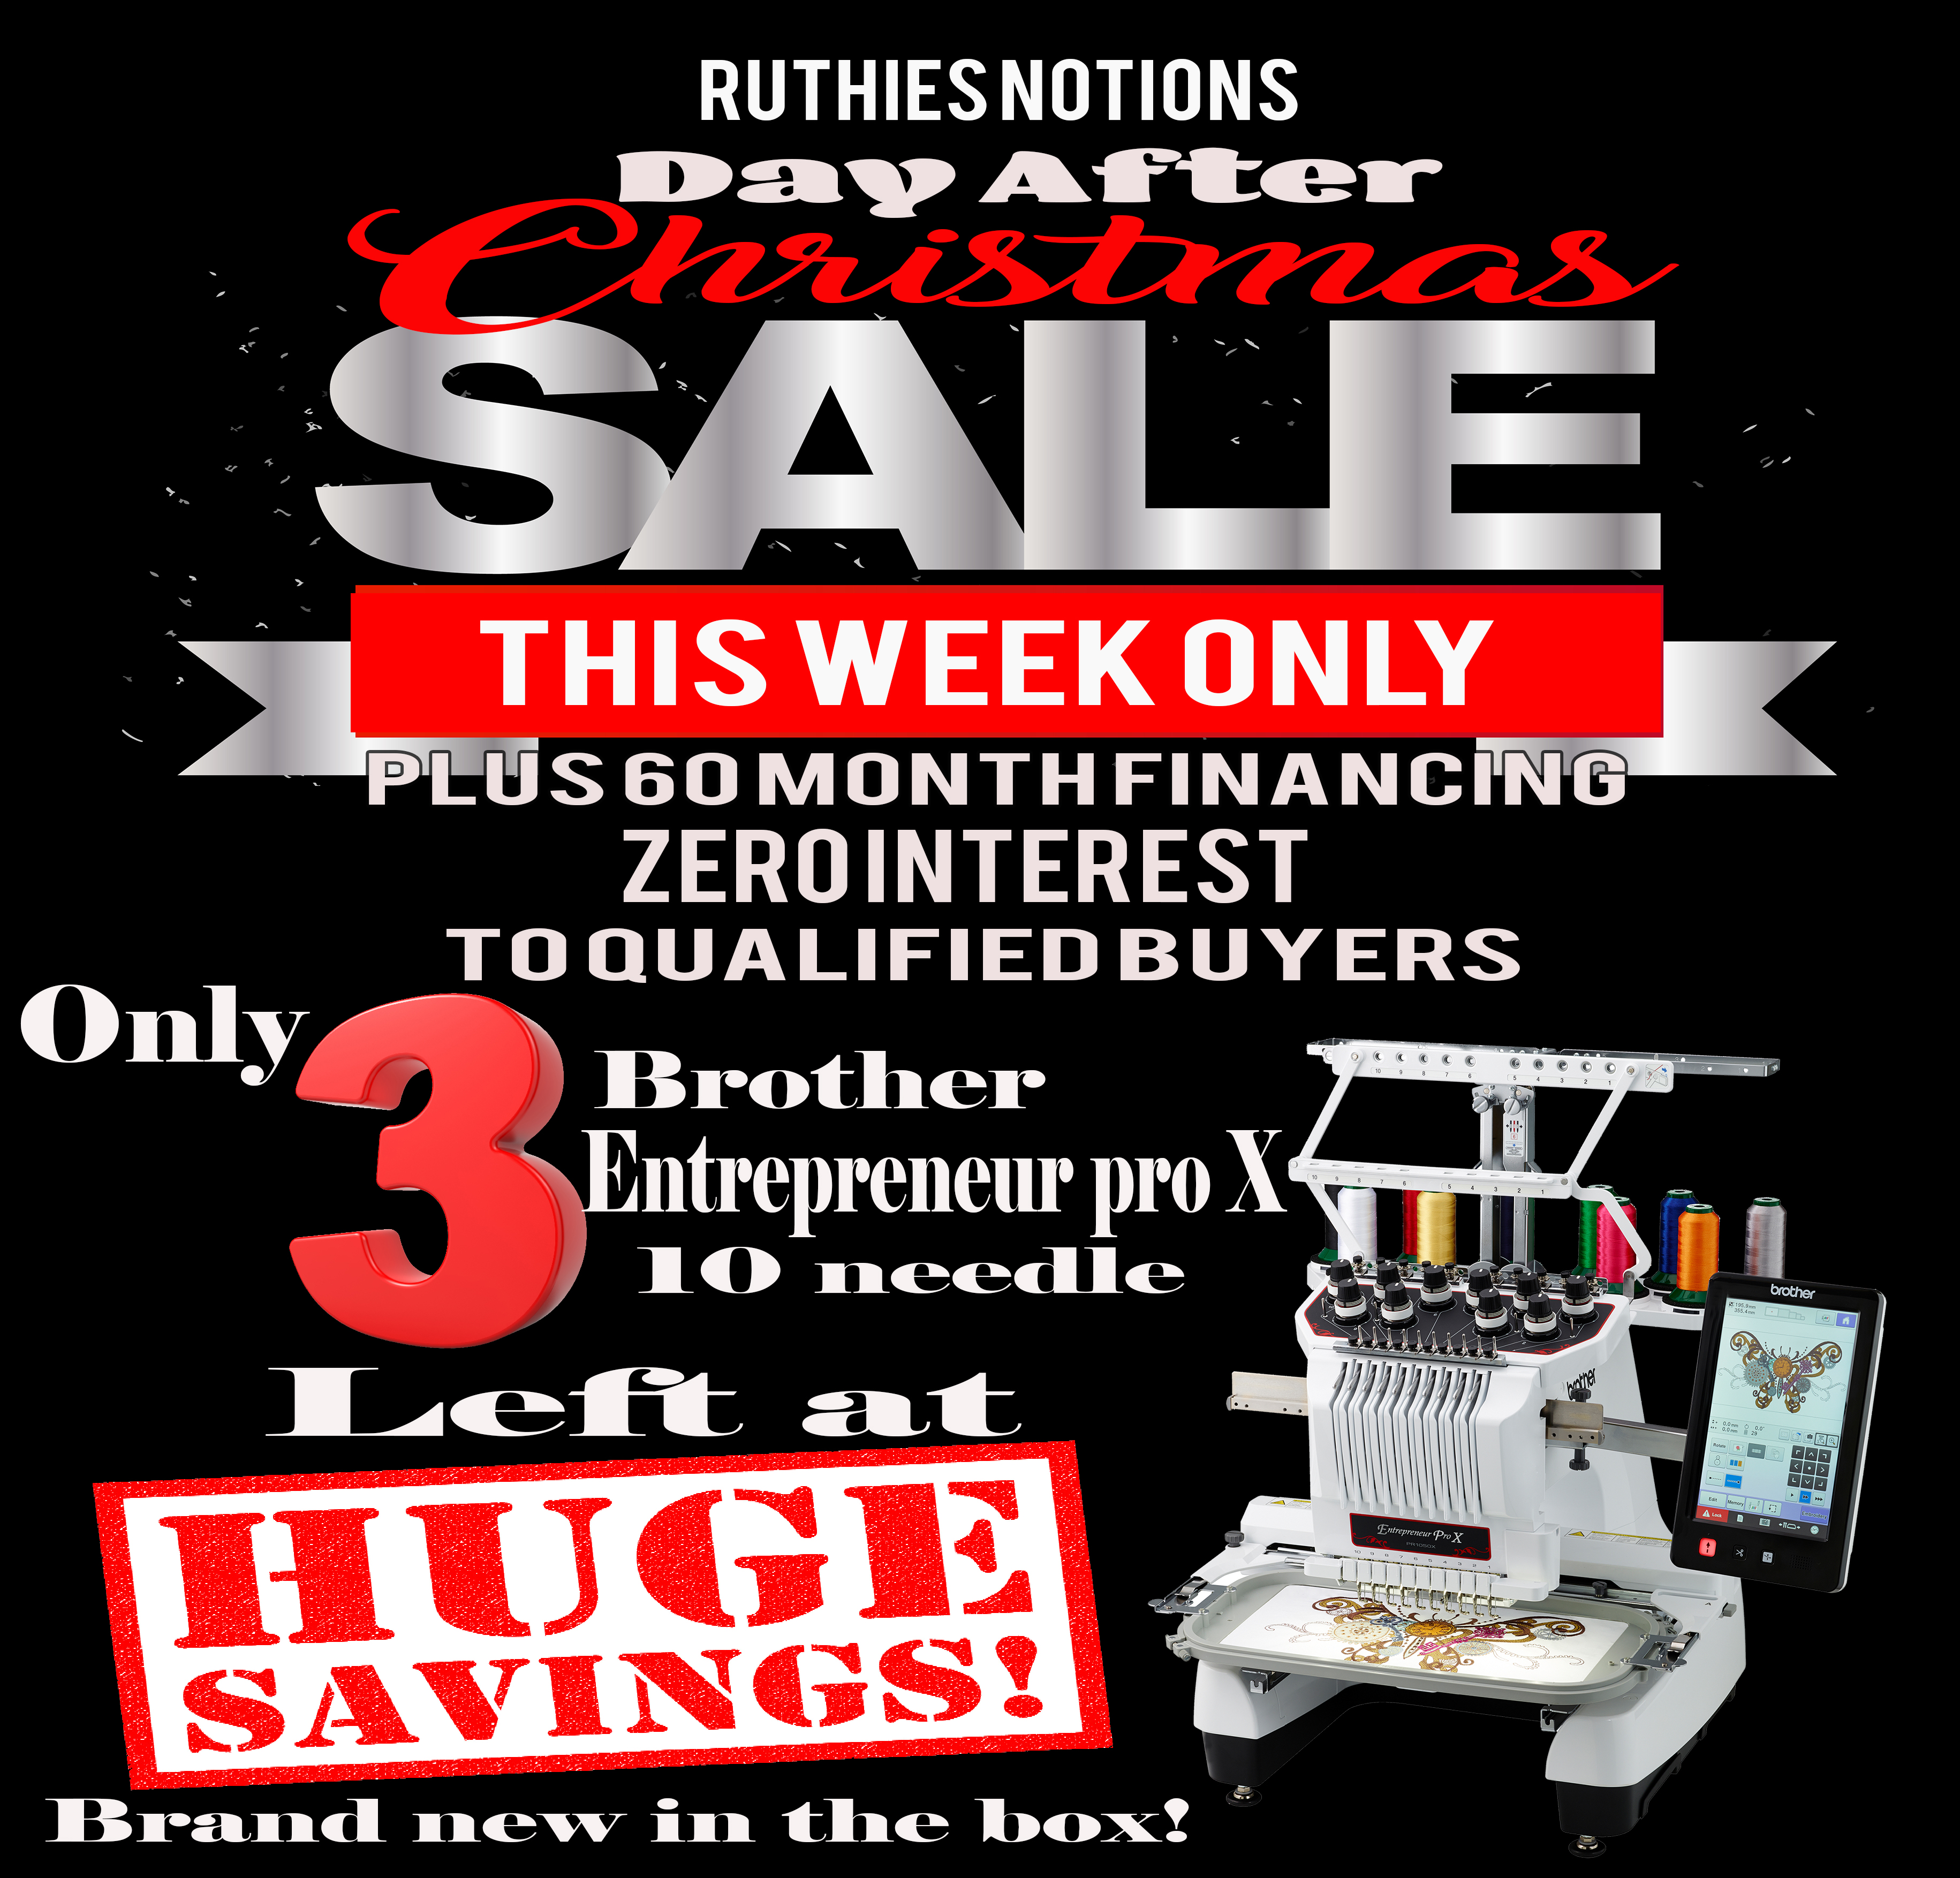 ruthies entrepreneur day after christmas sale ad - Day After Christmas Ads